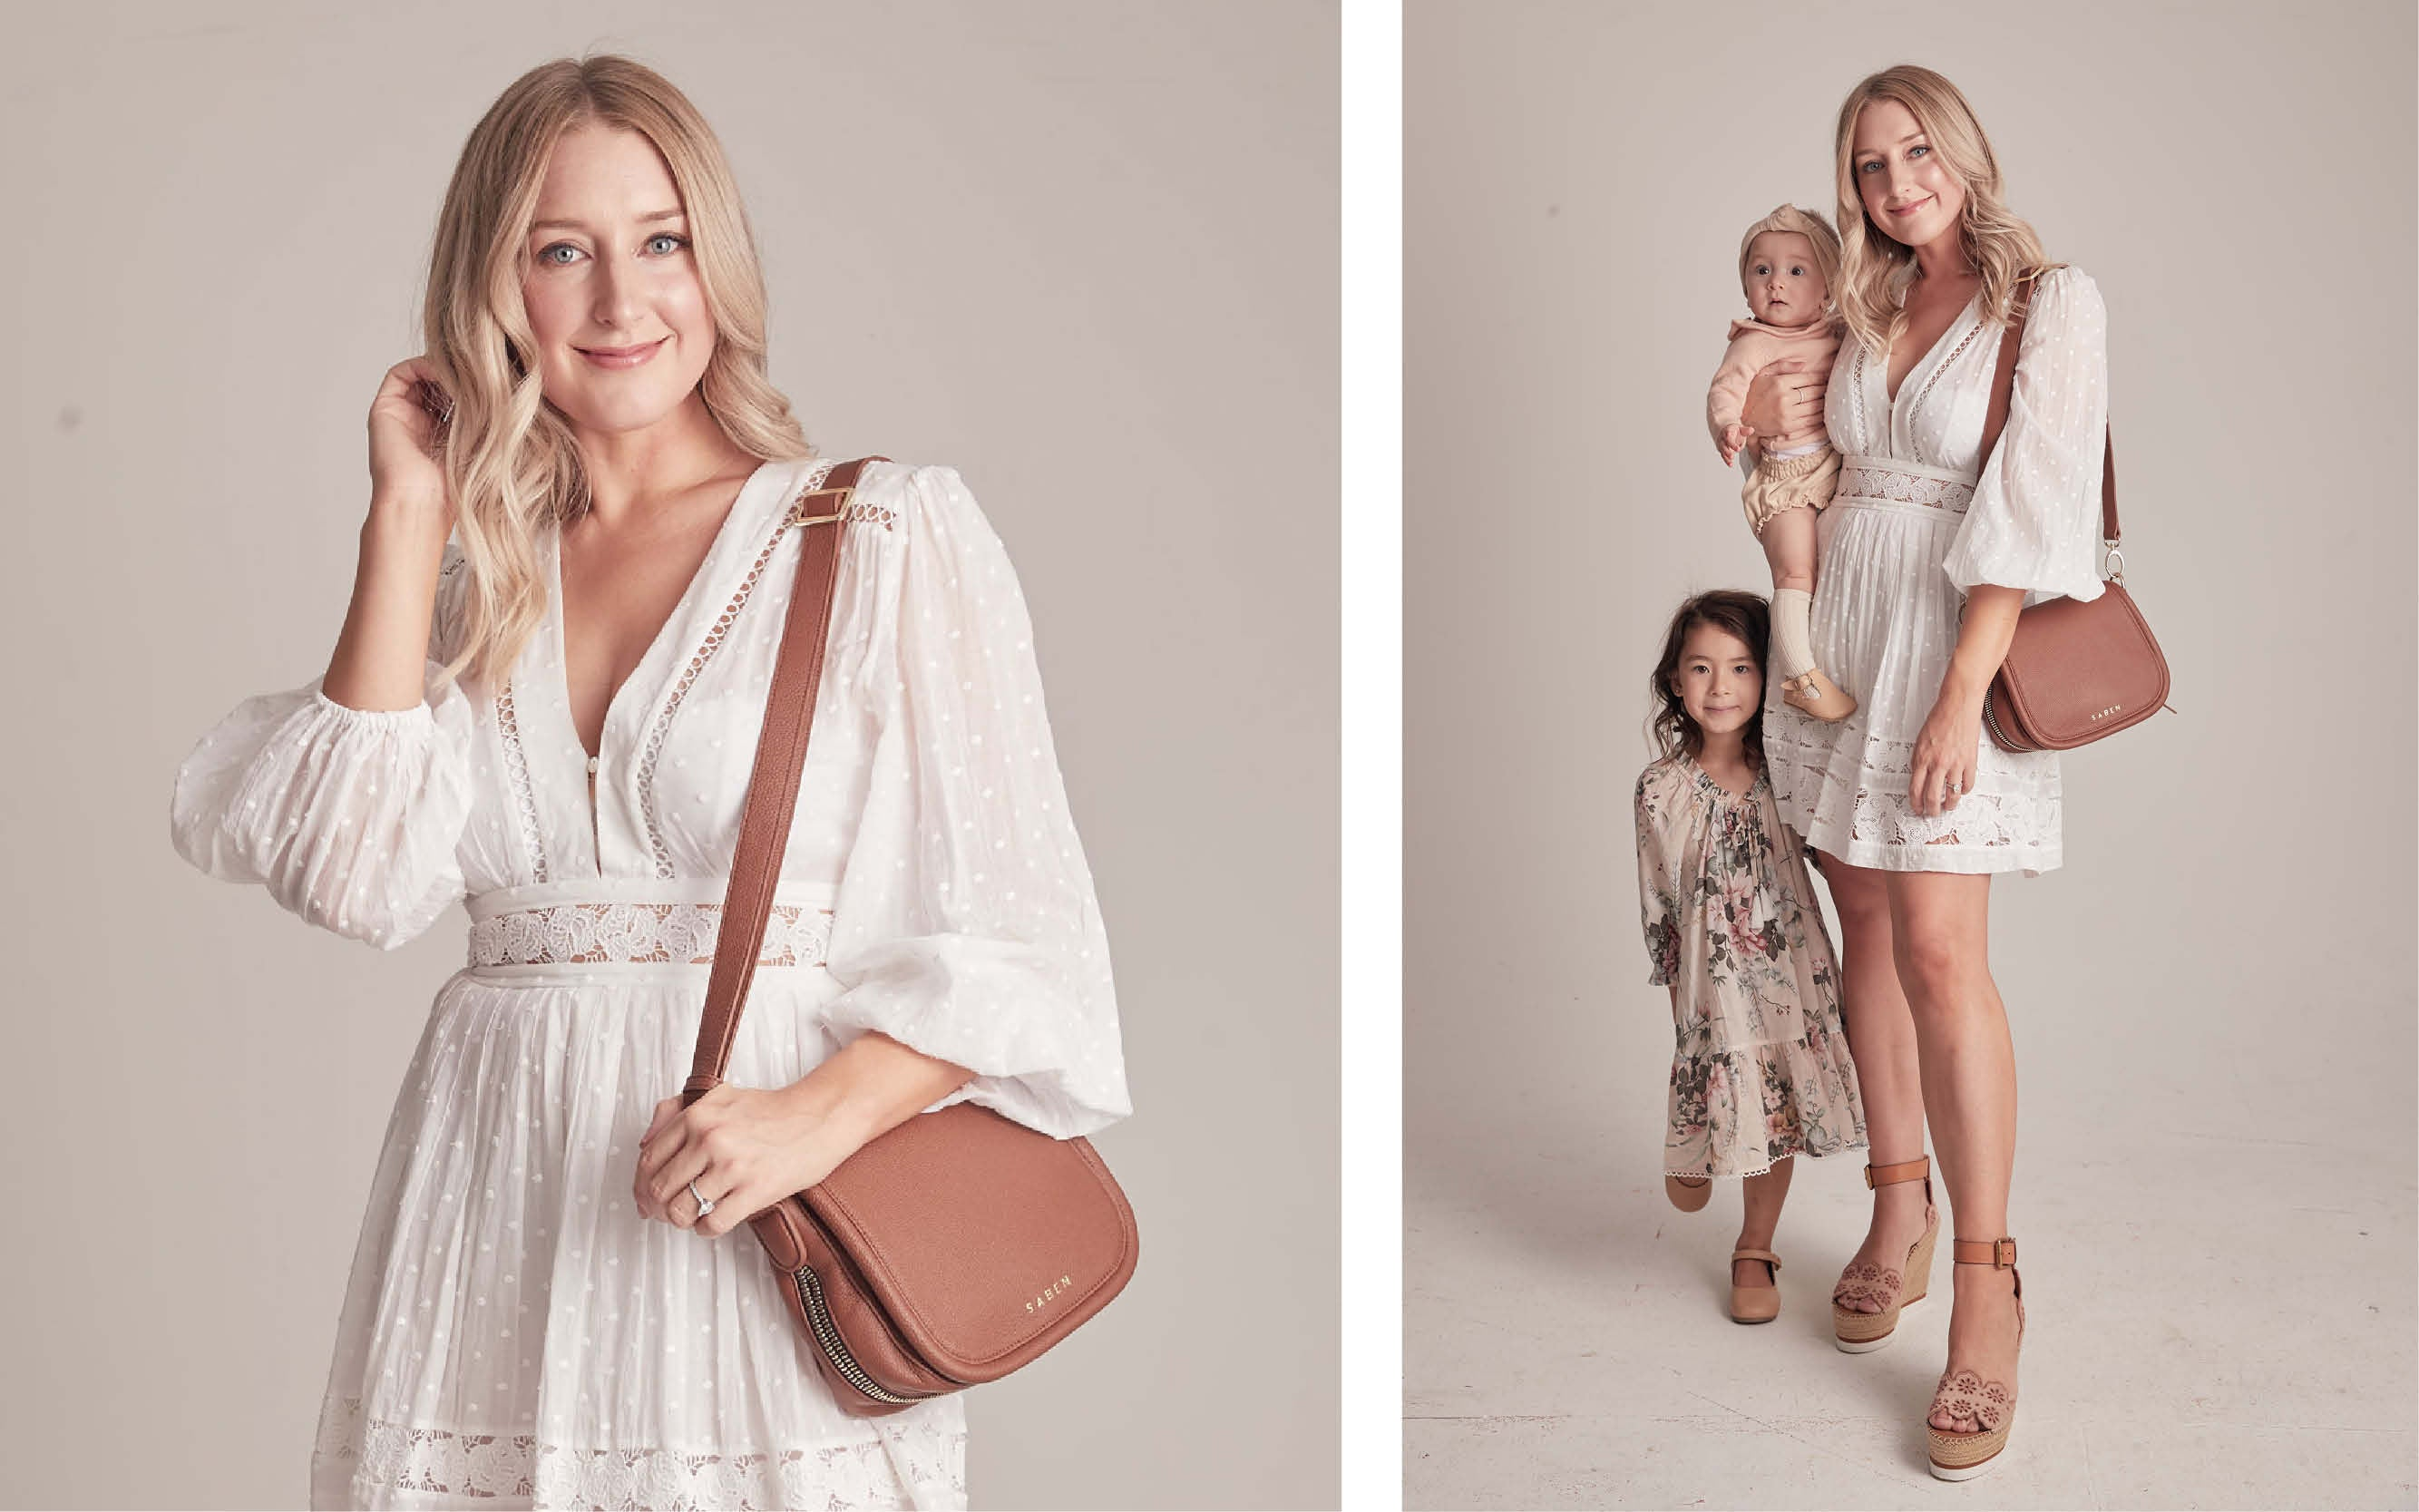 Holly Wright wears Saddie chestnut handbag for Saben Mothers Day Campaign